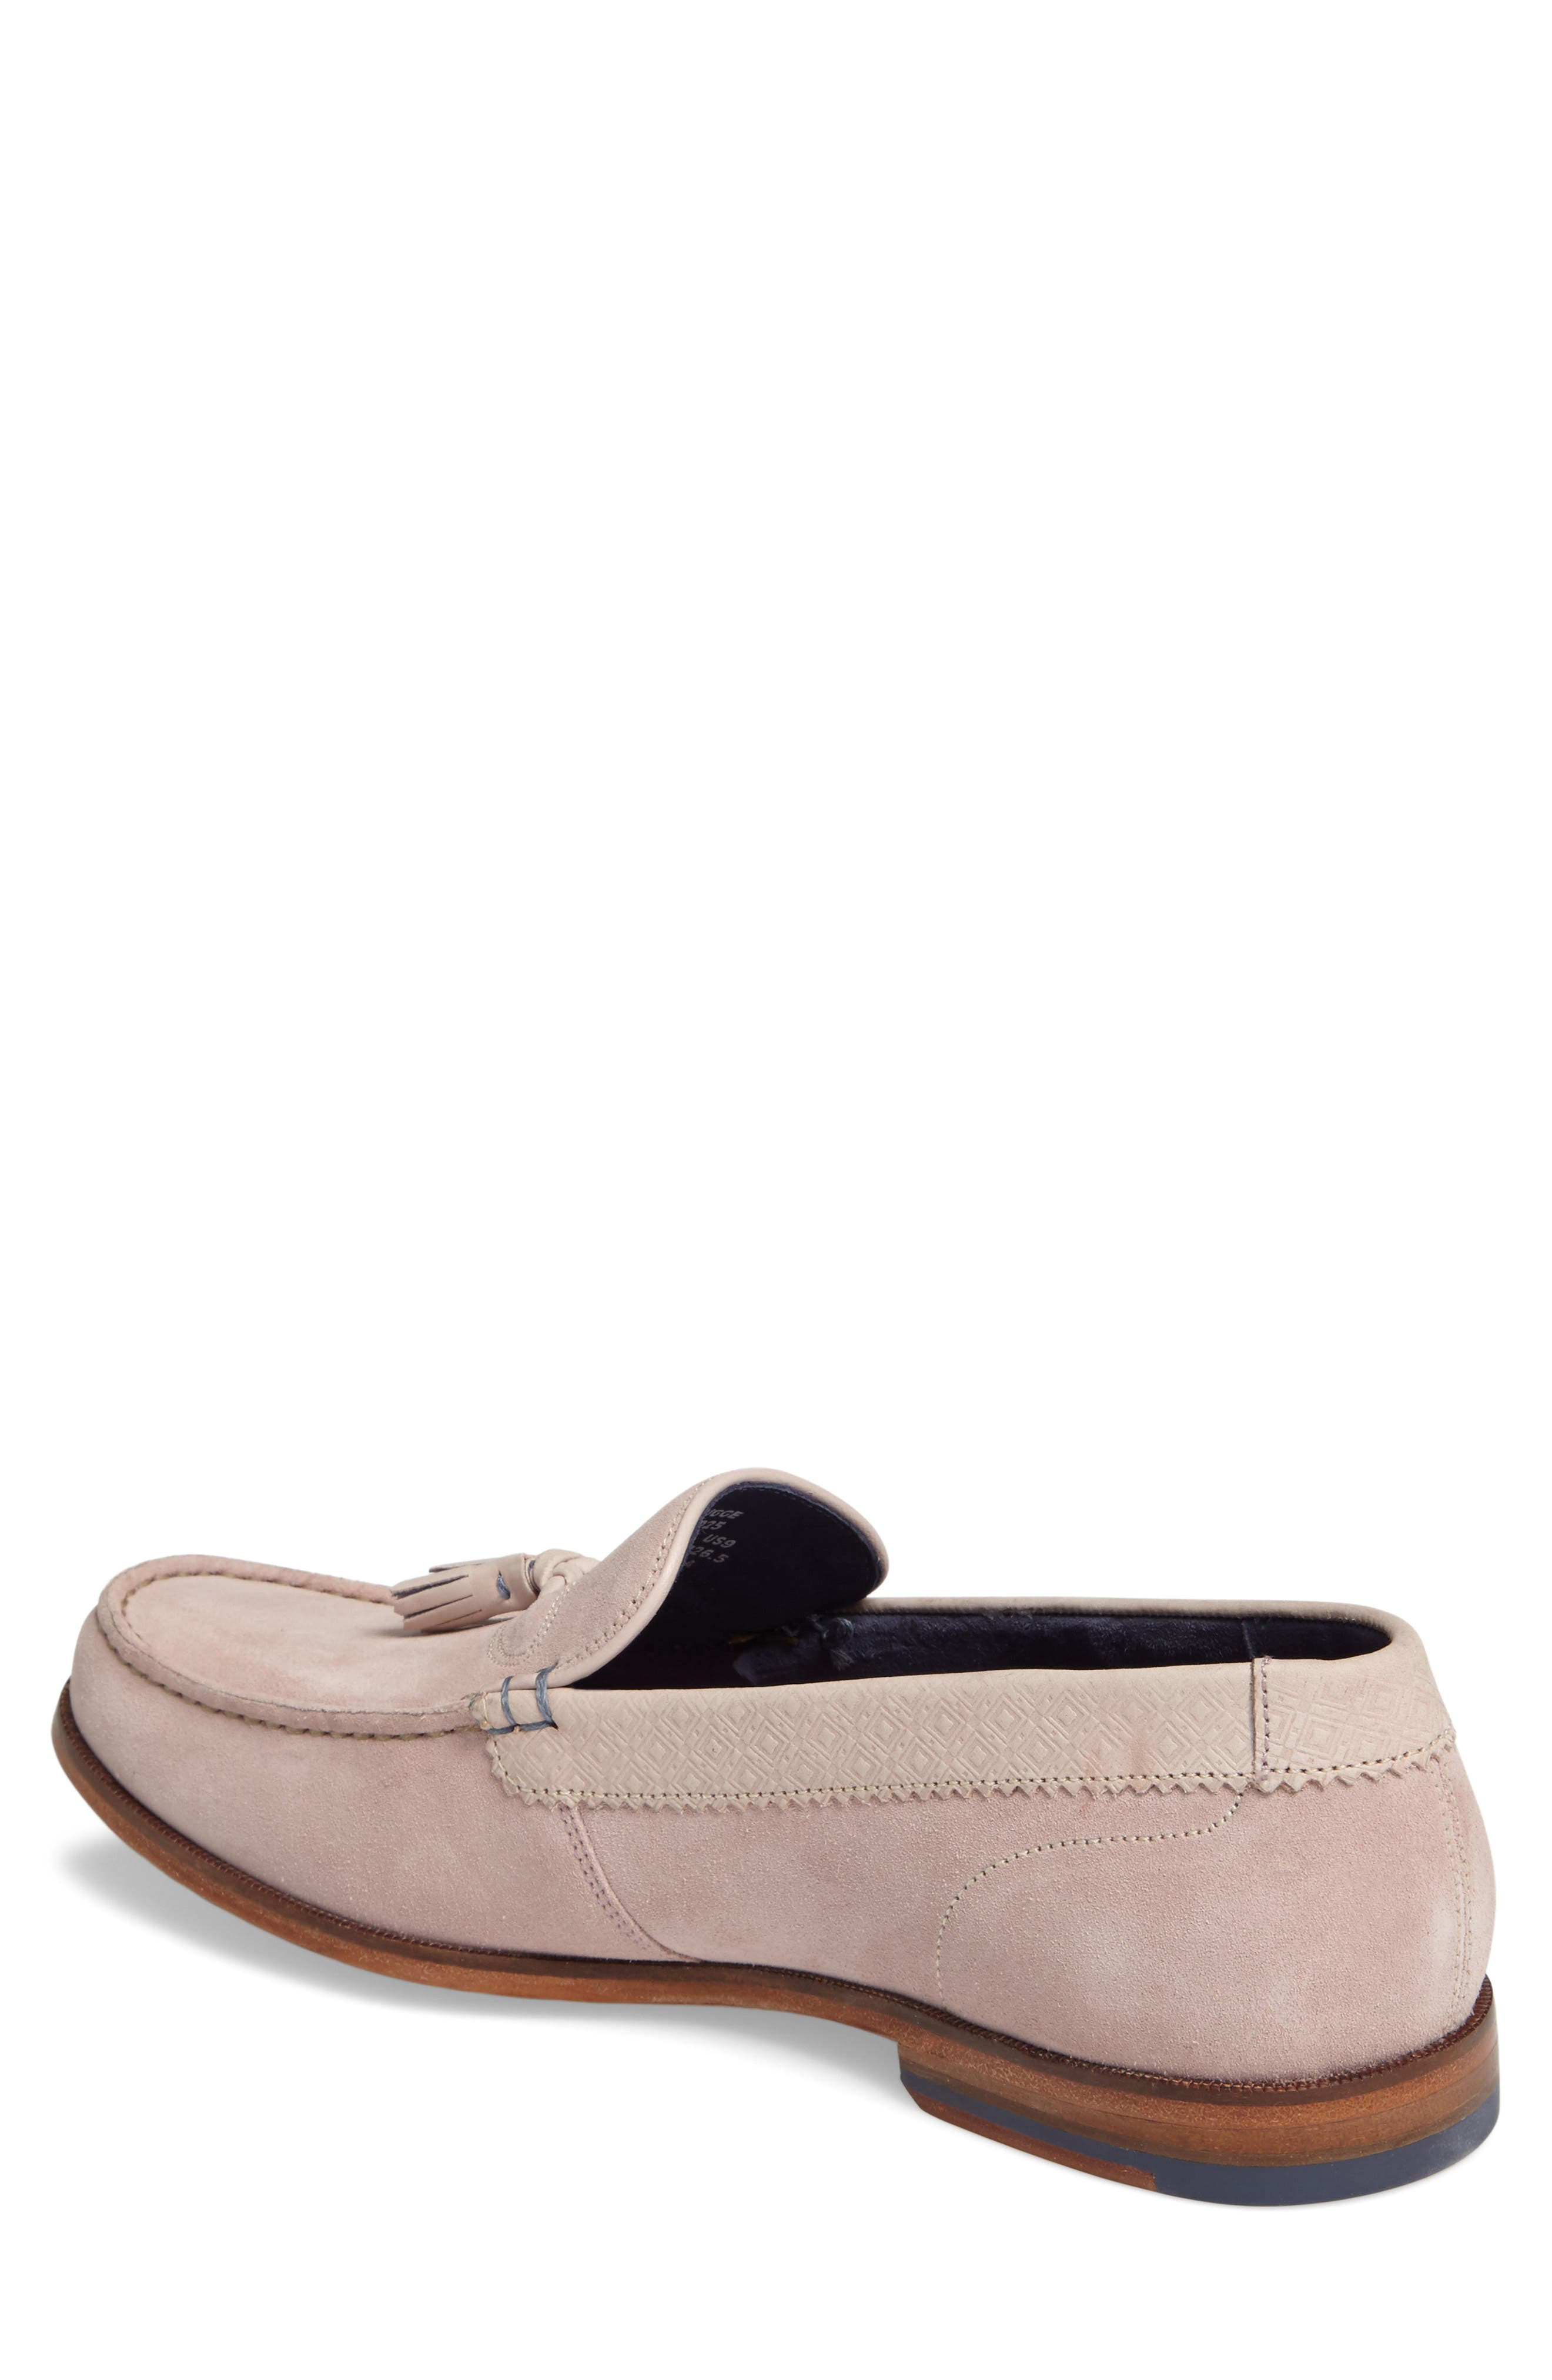 Dougge Tassel Loafer,                             Alternate thumbnail 12, color,